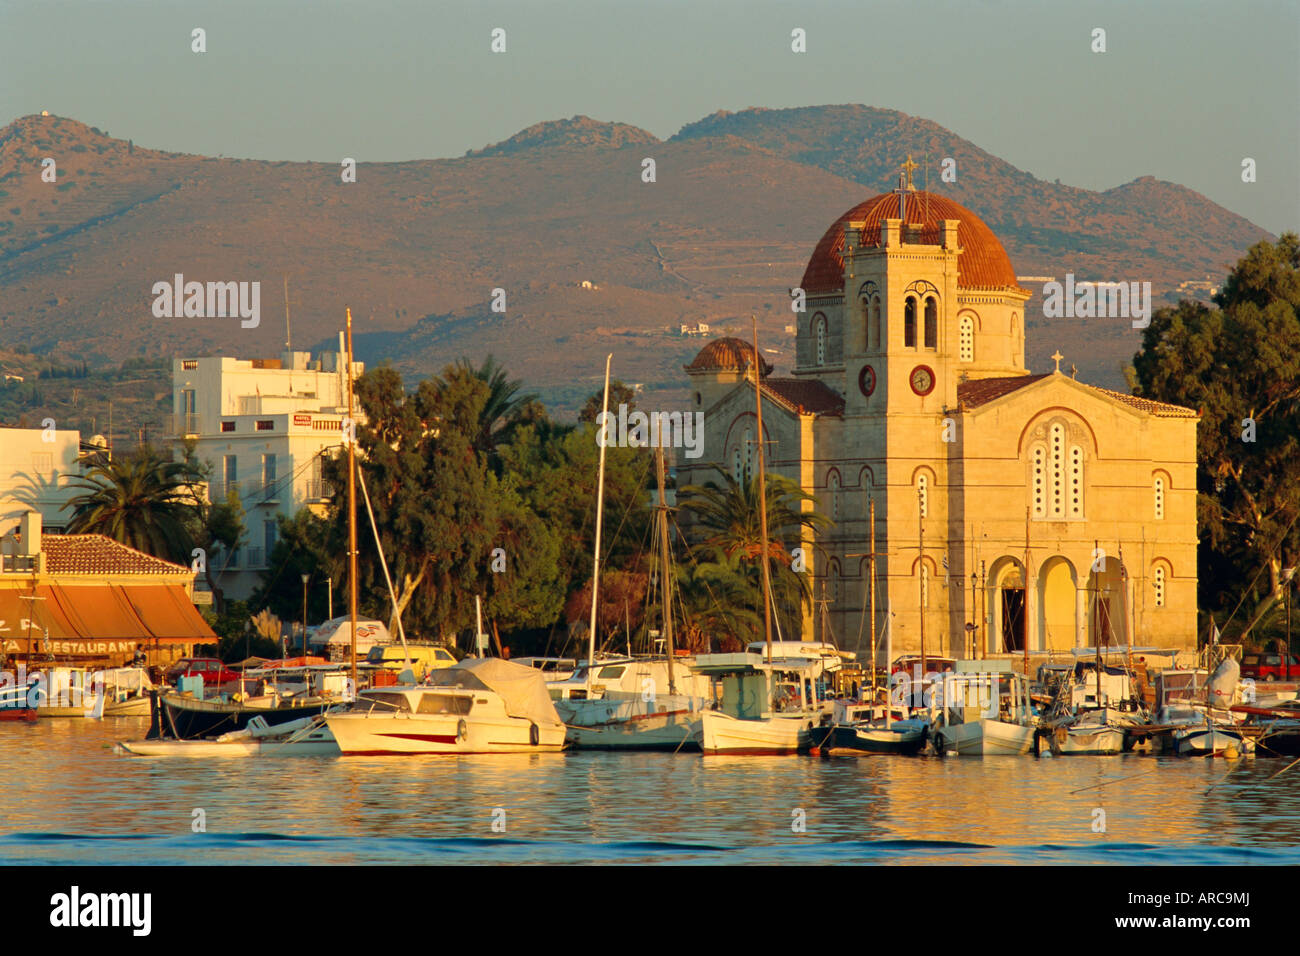 Town church and waterfront, Aegina, Argo-Saronic Islands, Greece, Europe - Stock Image